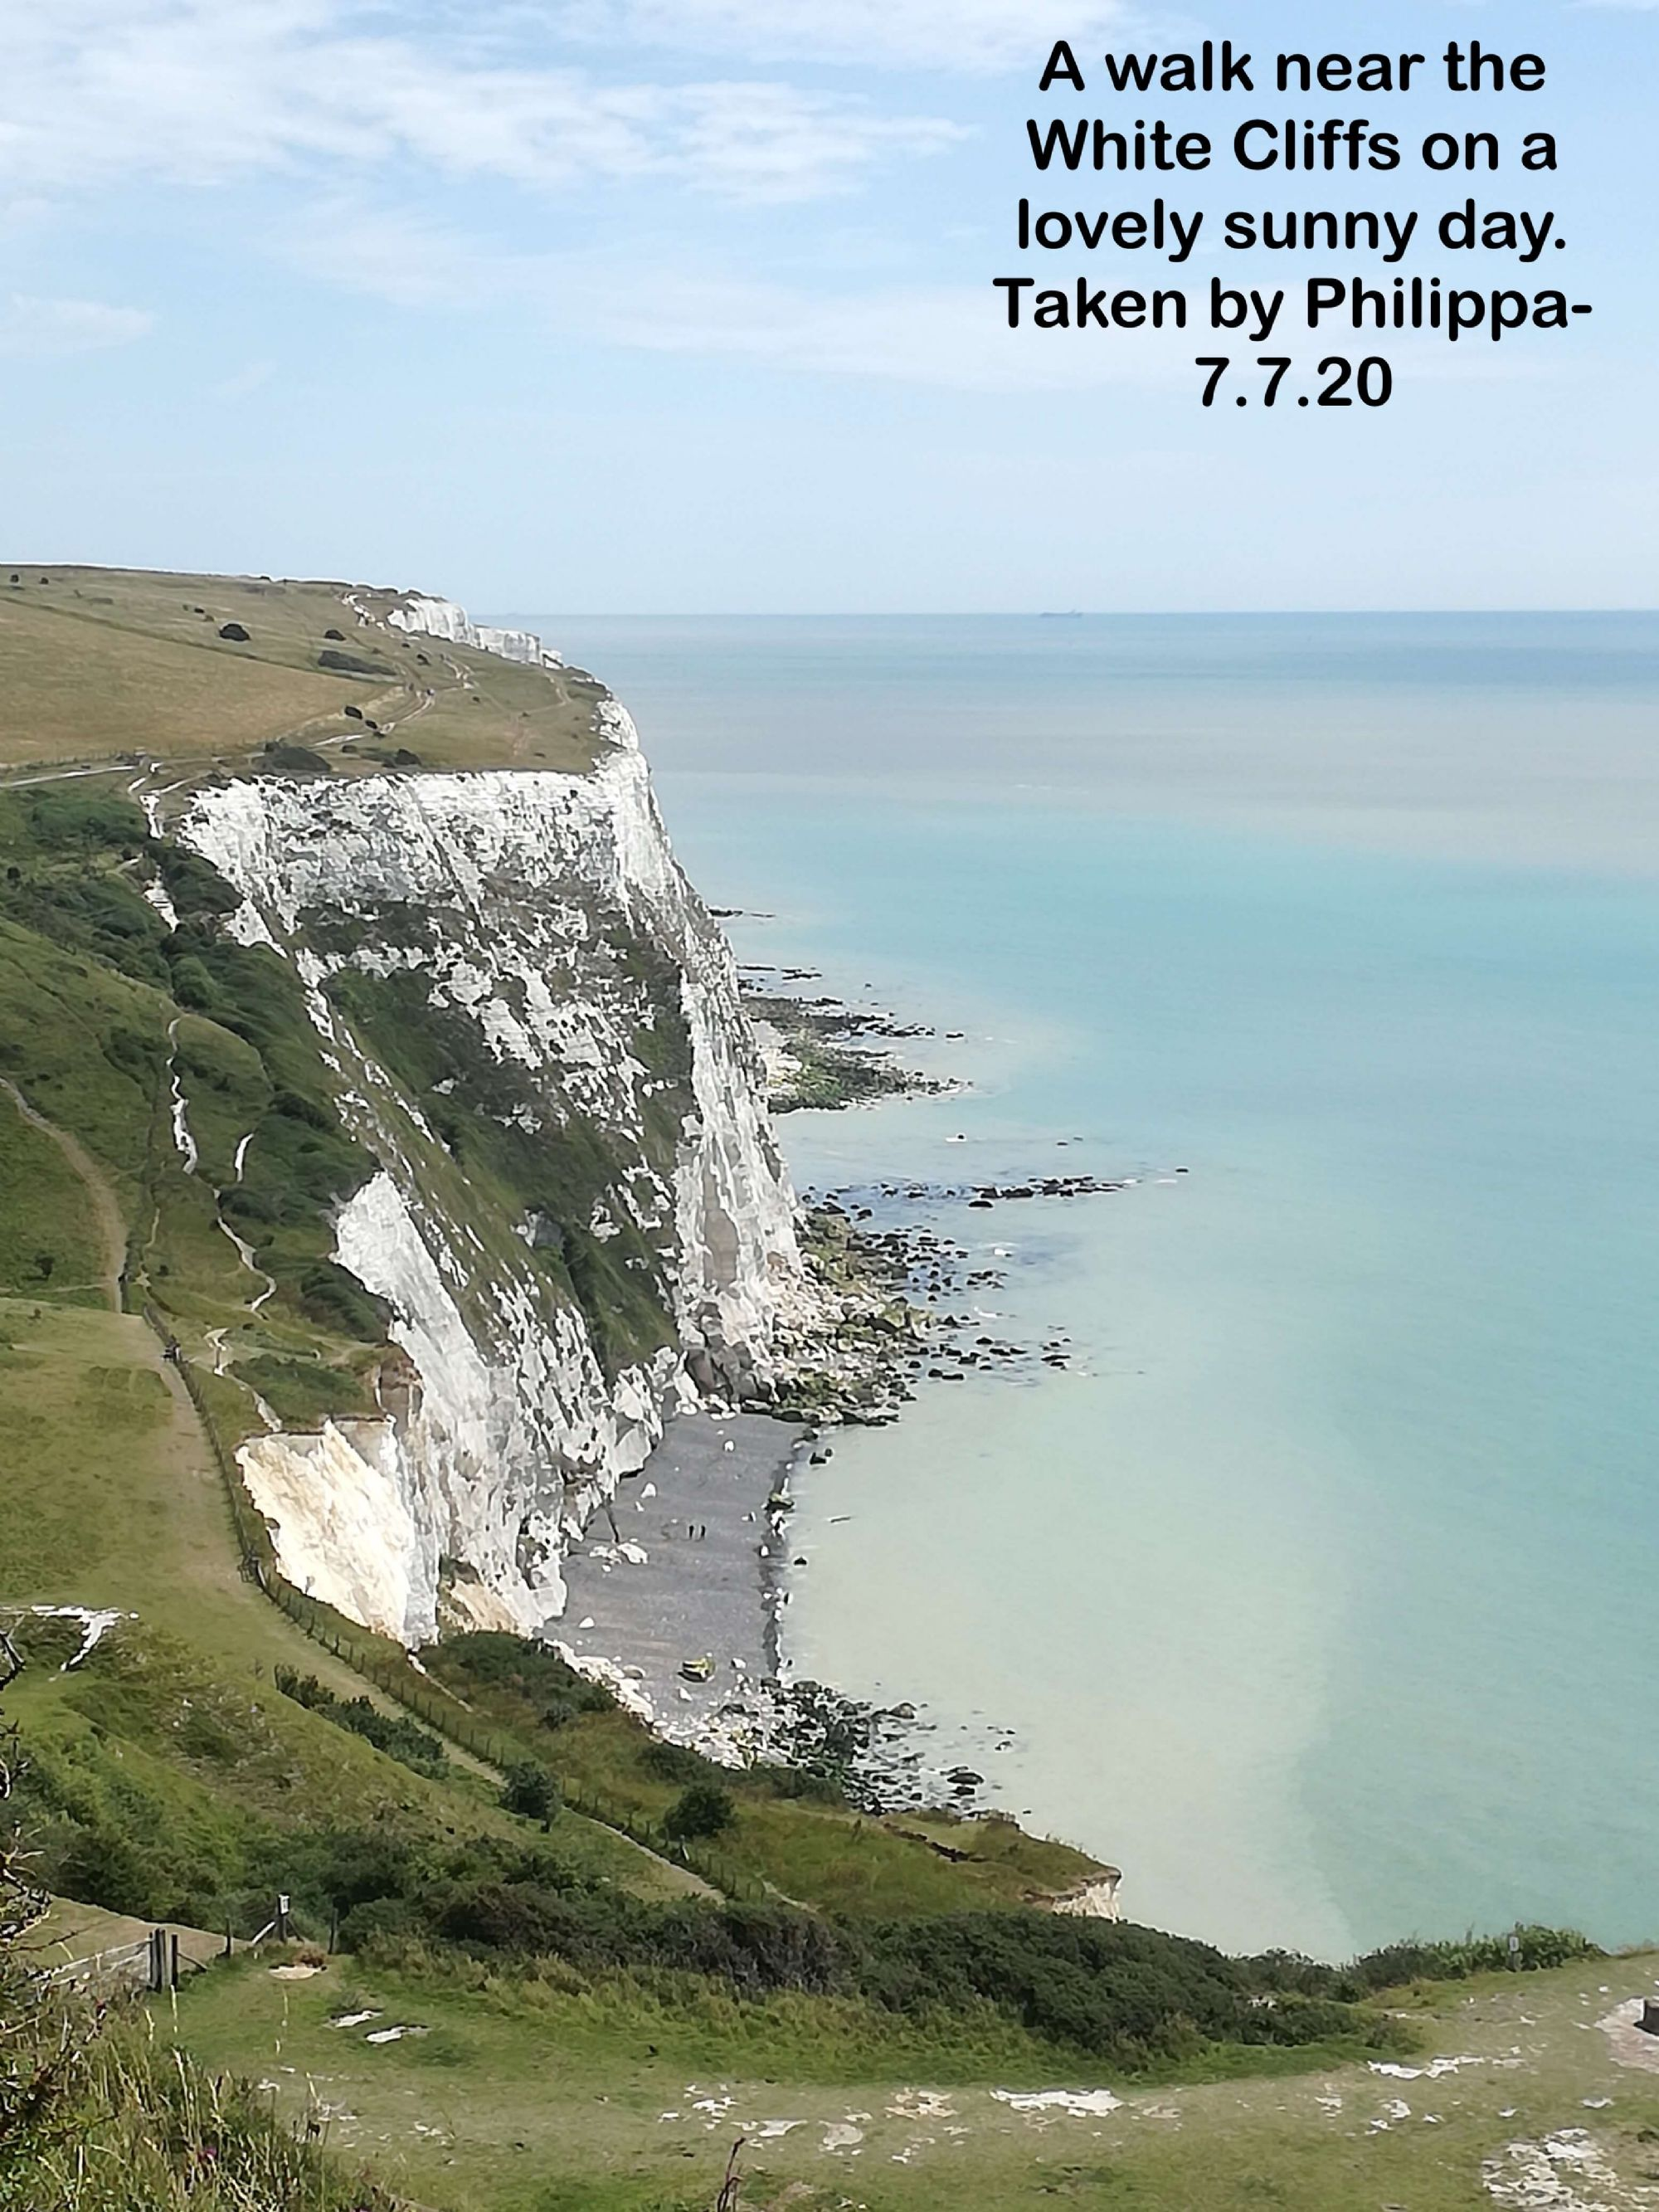 A walk near the White Cliffs on a lovely sunny day.